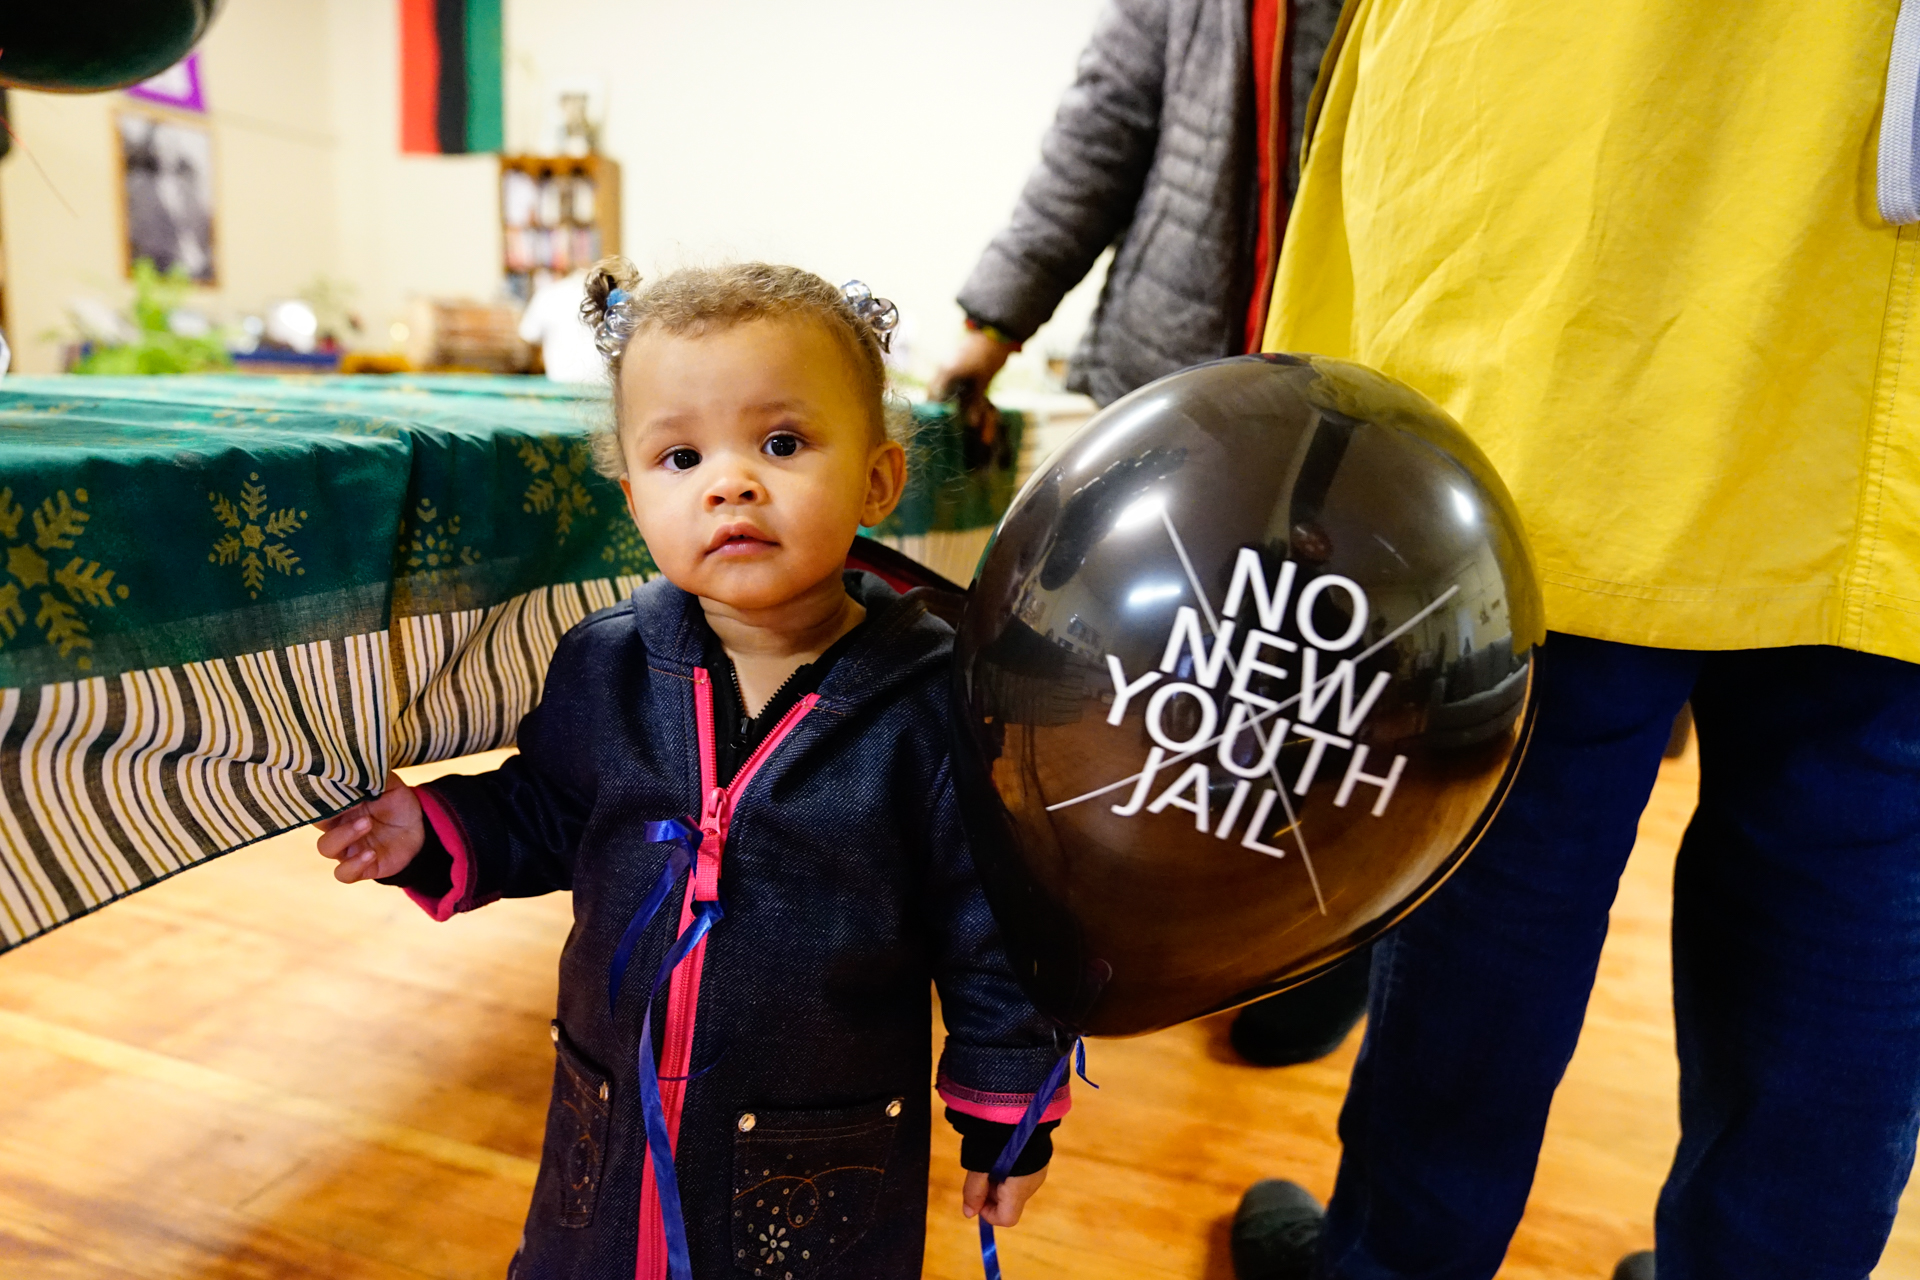 A young girl holds a balloon from the No New Youth Jail Campaign